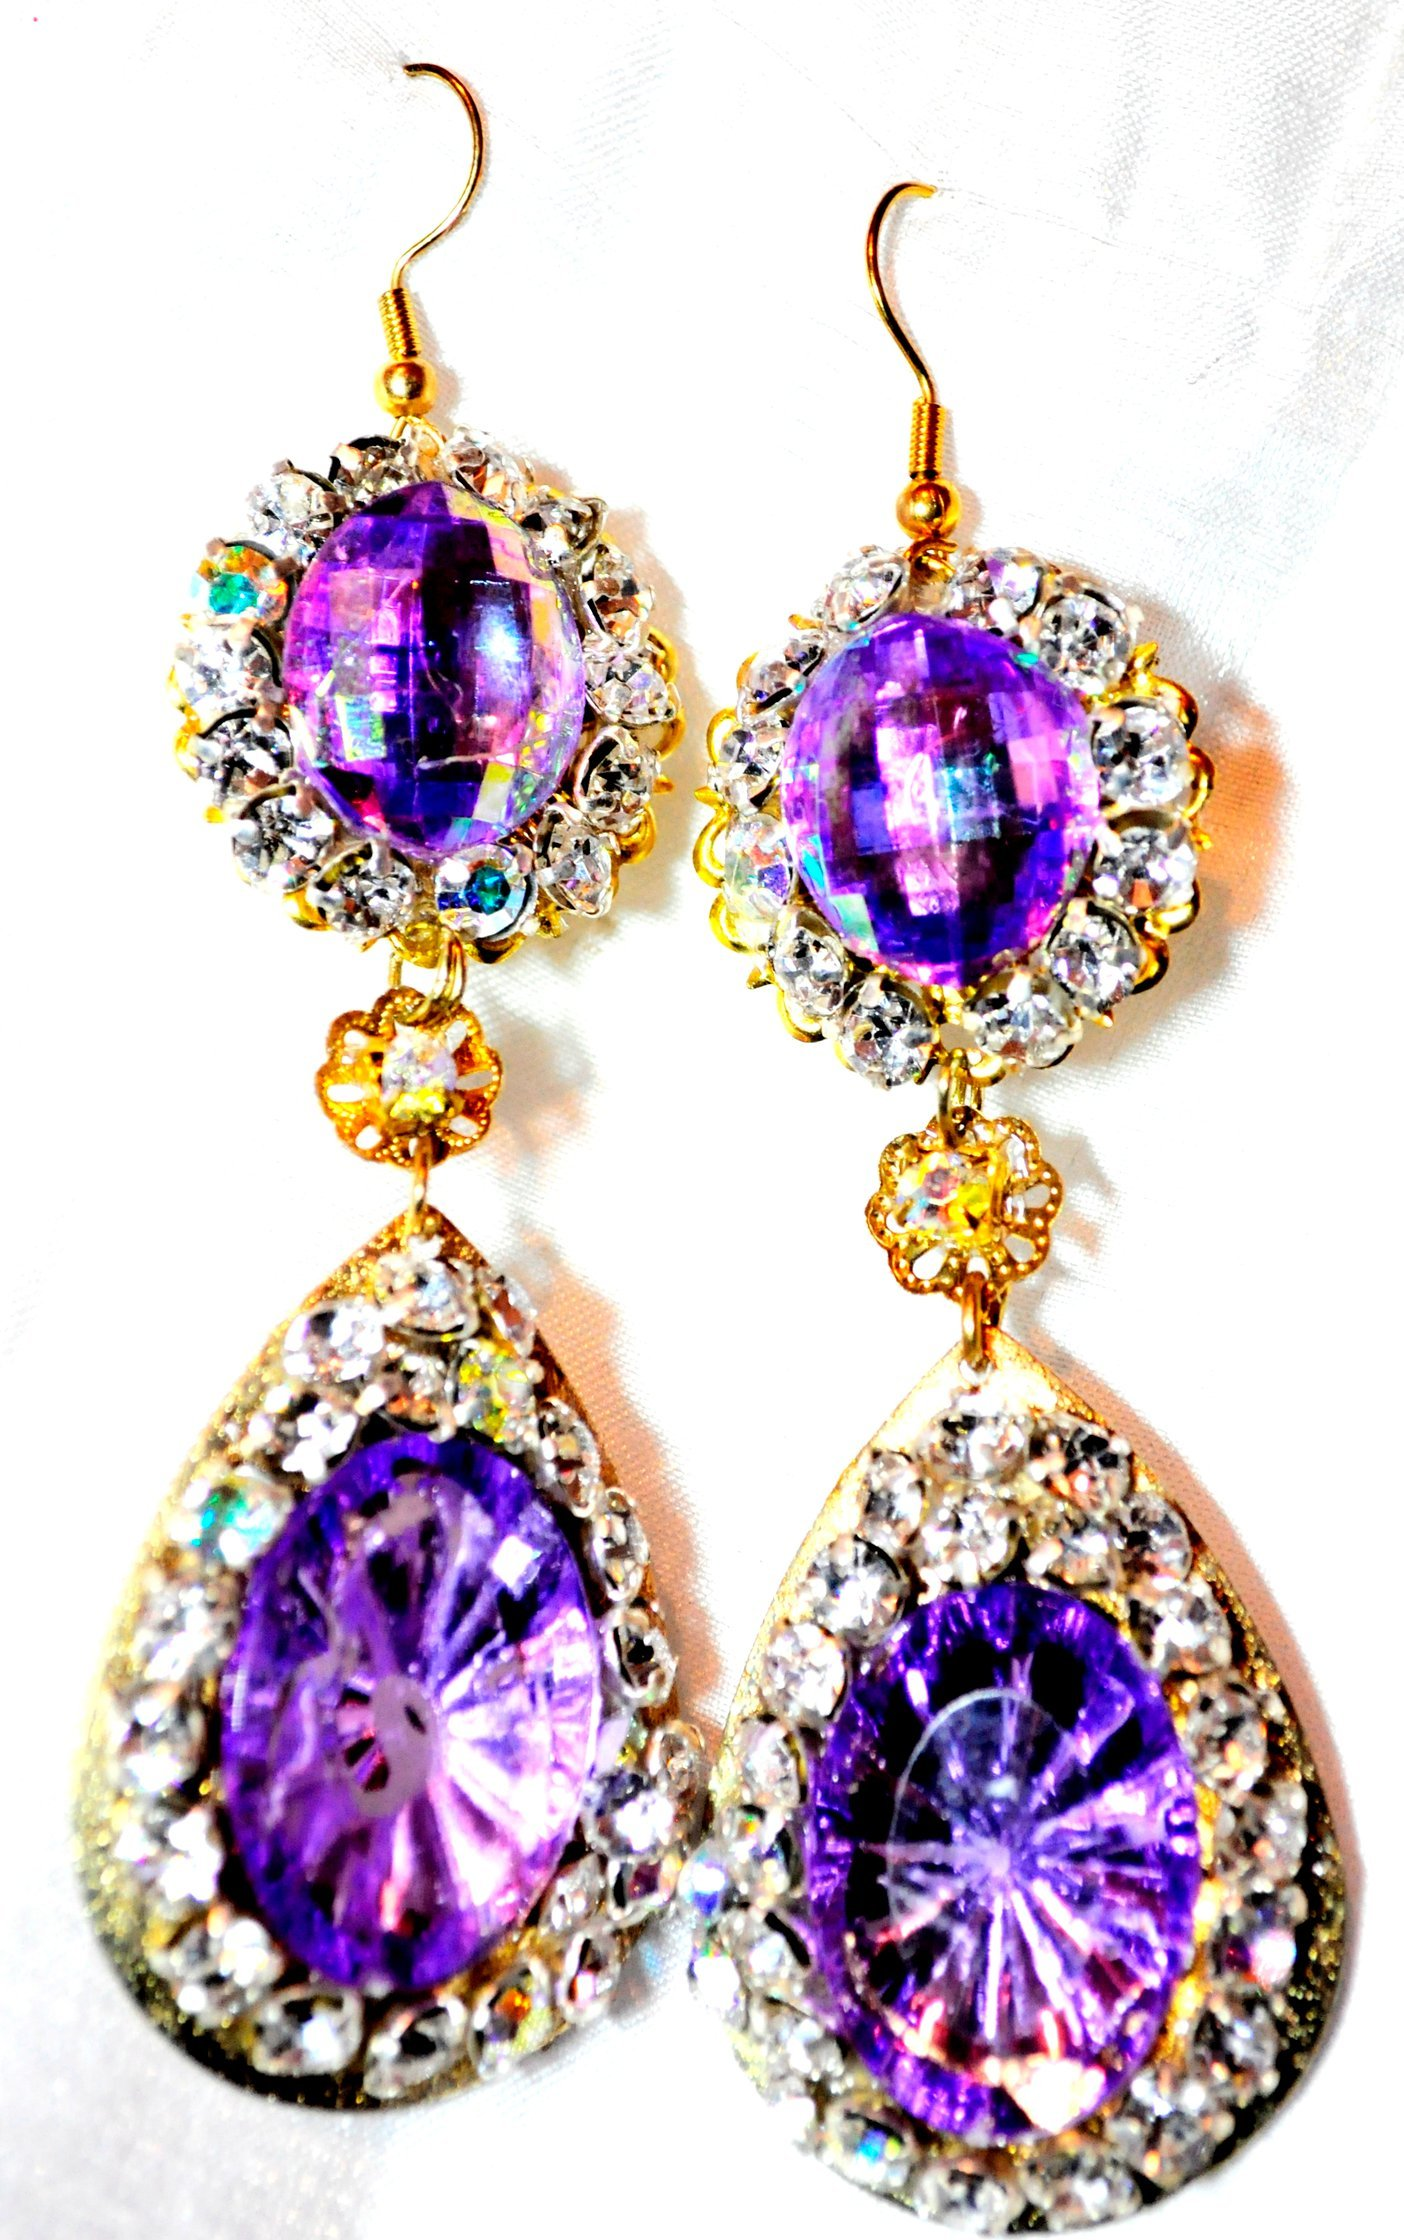 GOLD TEARDROP AND LAVENDER, CRYSTAL STONES